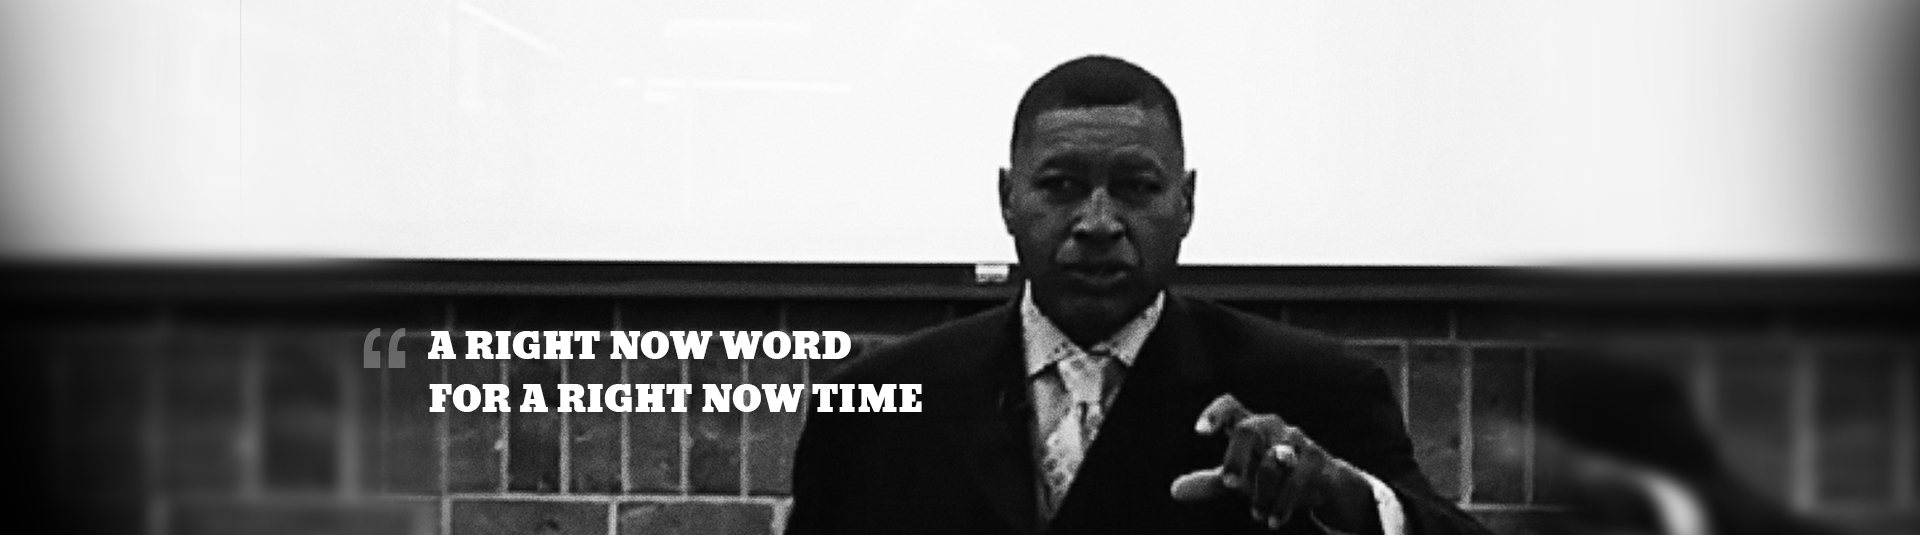 Powerhouse of Deliverance - A Right Now Word For A Right Now Time